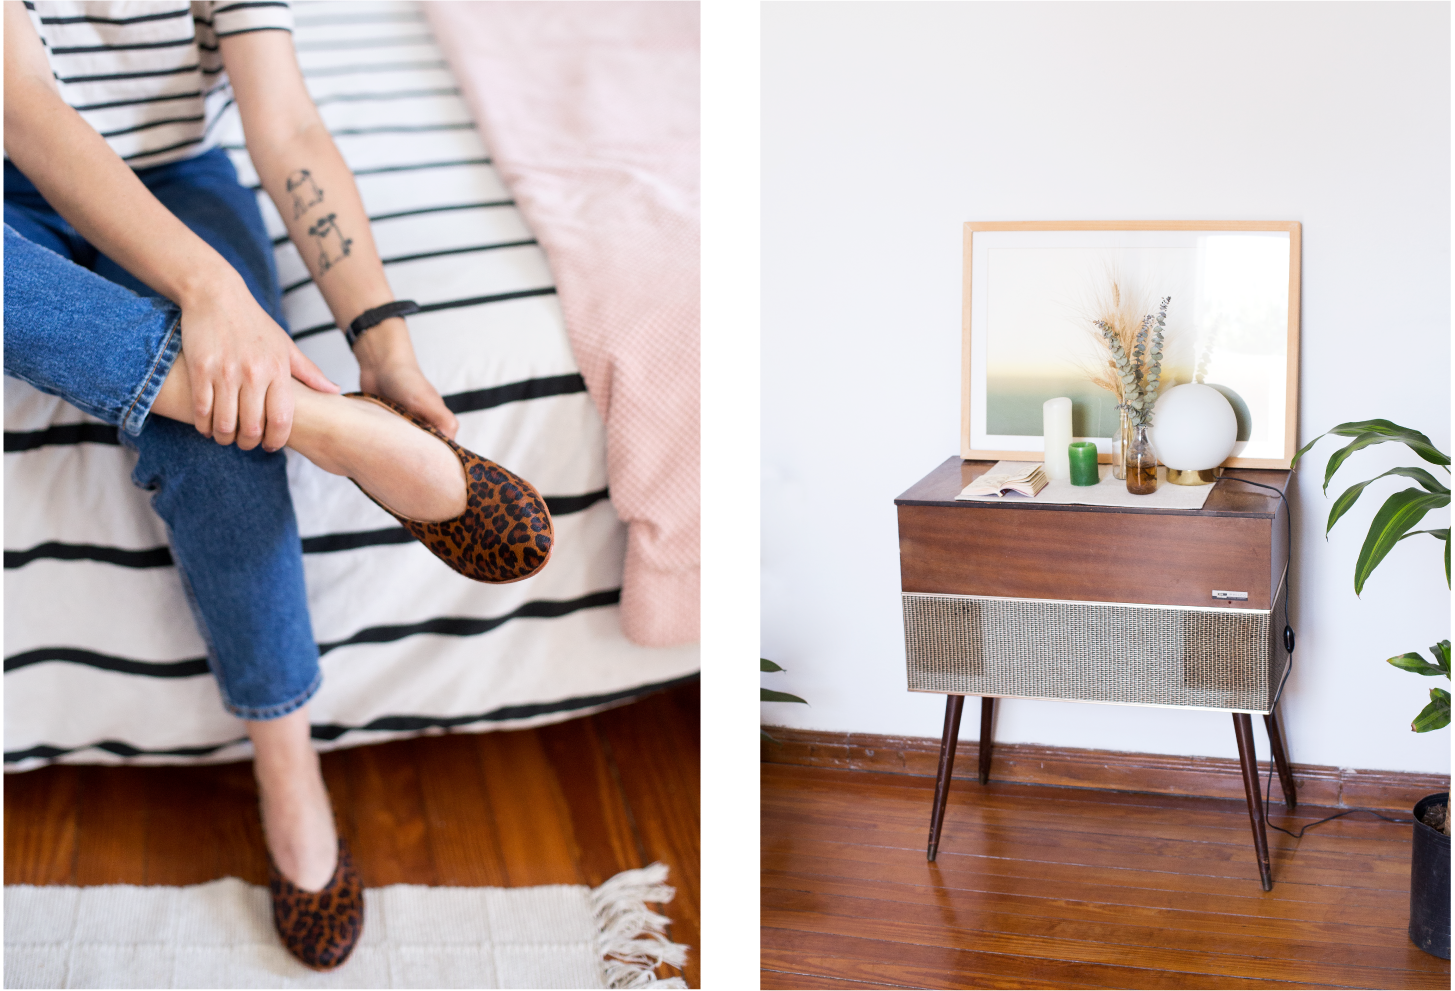 Left: Daiana trying on the Glove Flat in Leopard Pony. Right: Objects neatly arranged on a midcentury modern style record player console.